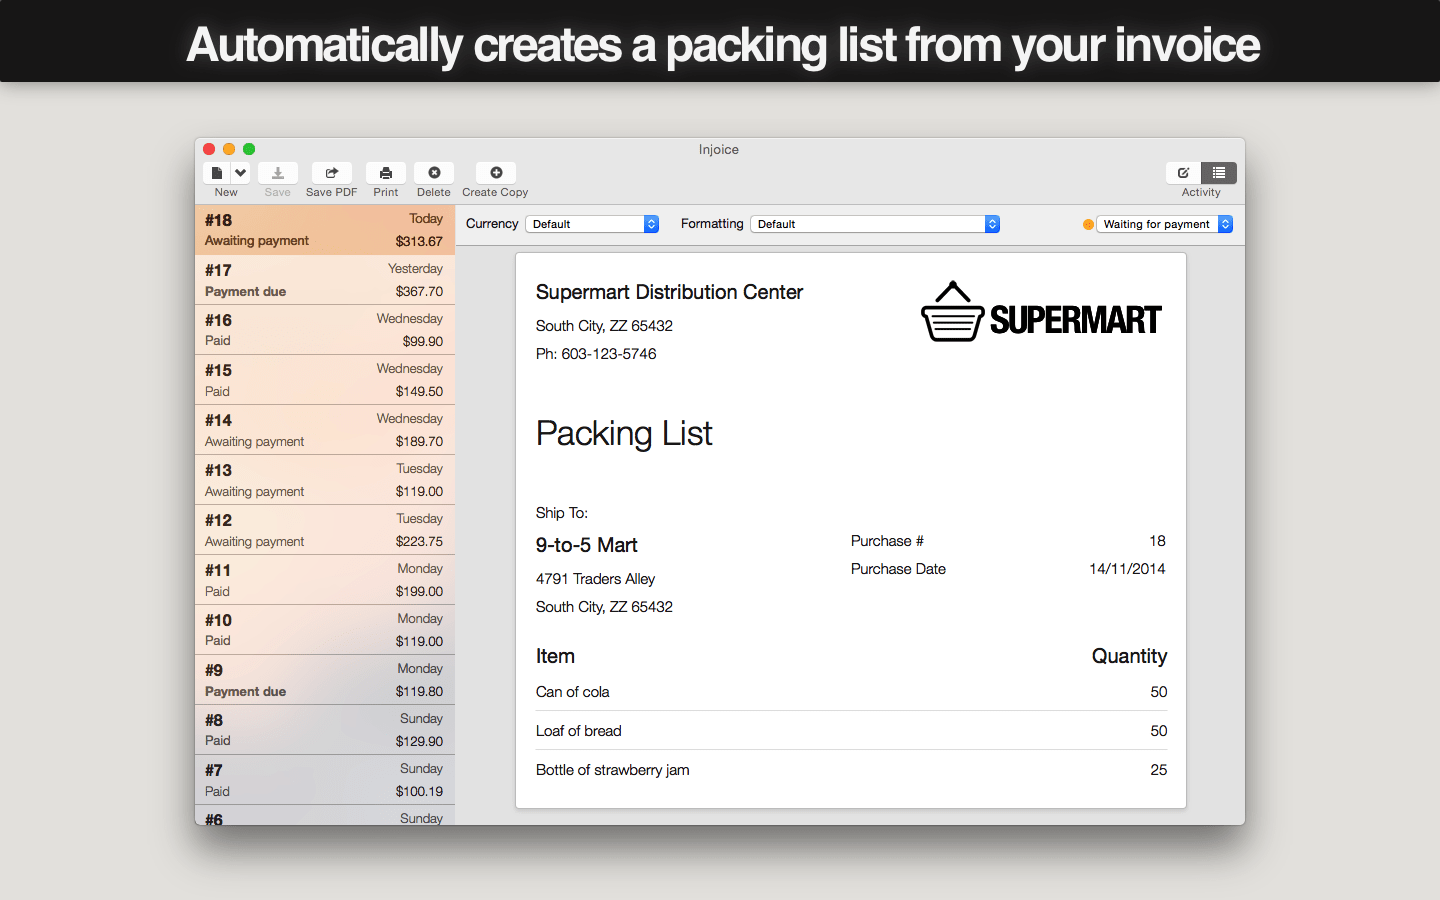 Injoice - Invoice and Packing List